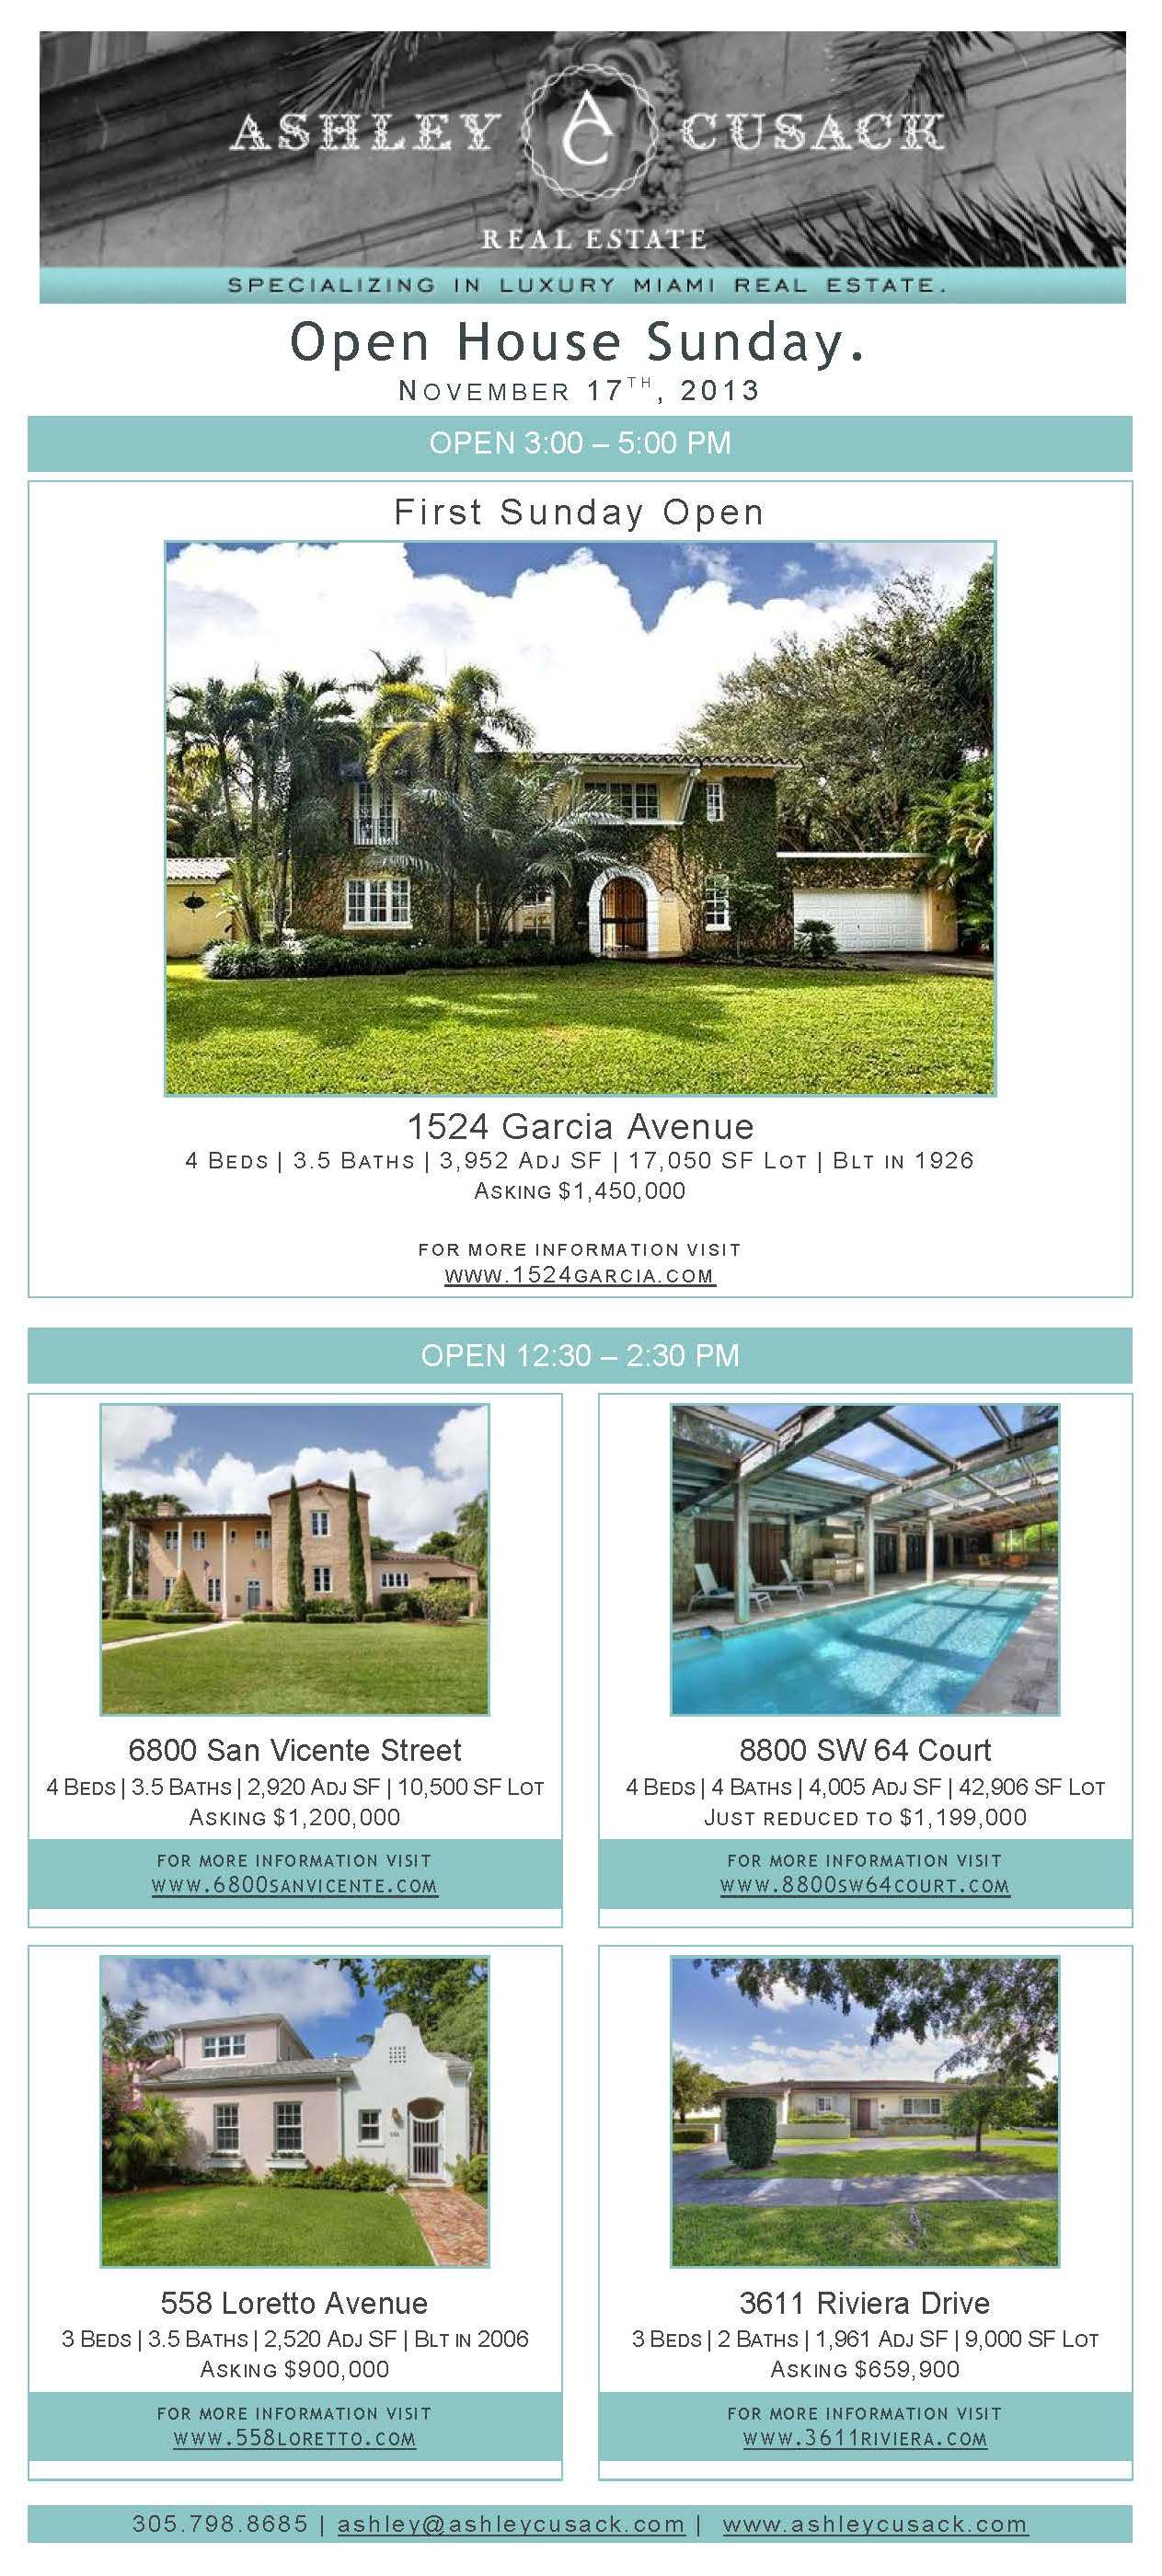 Sunday Open House Real Estate Coral Gables Ashley Cusack